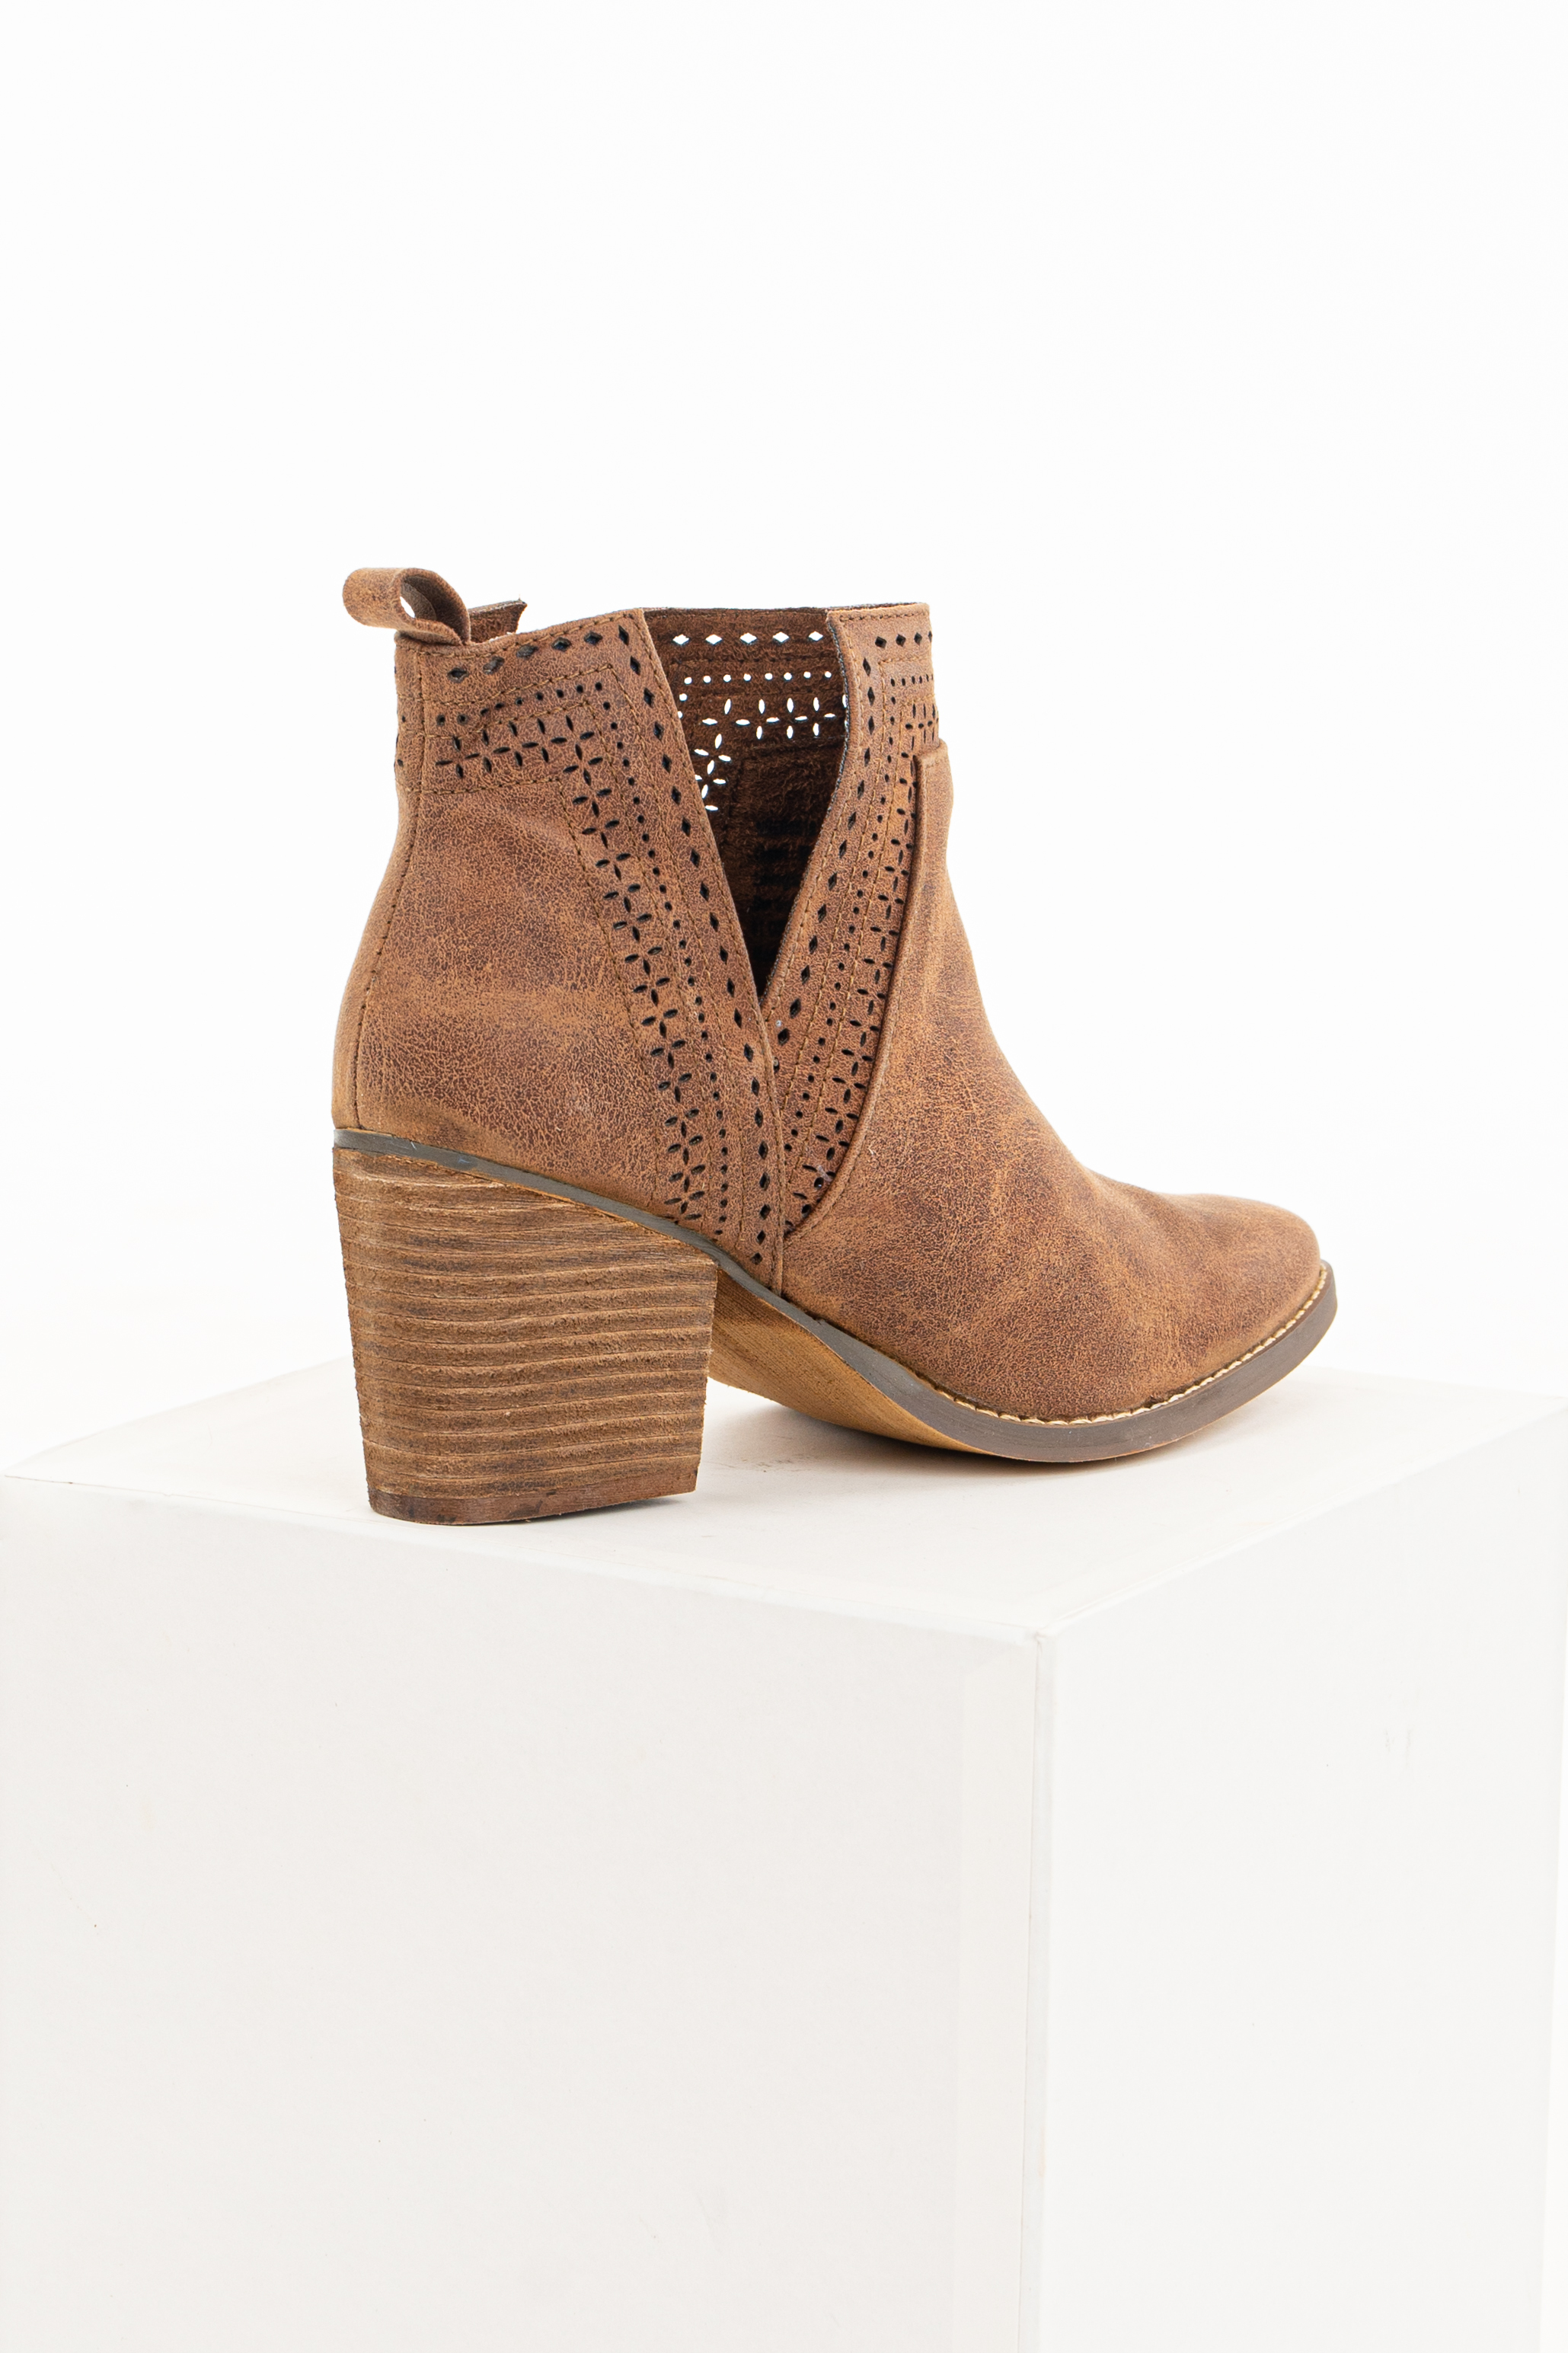 Cocoa High Heel Bootie with Perforated Details